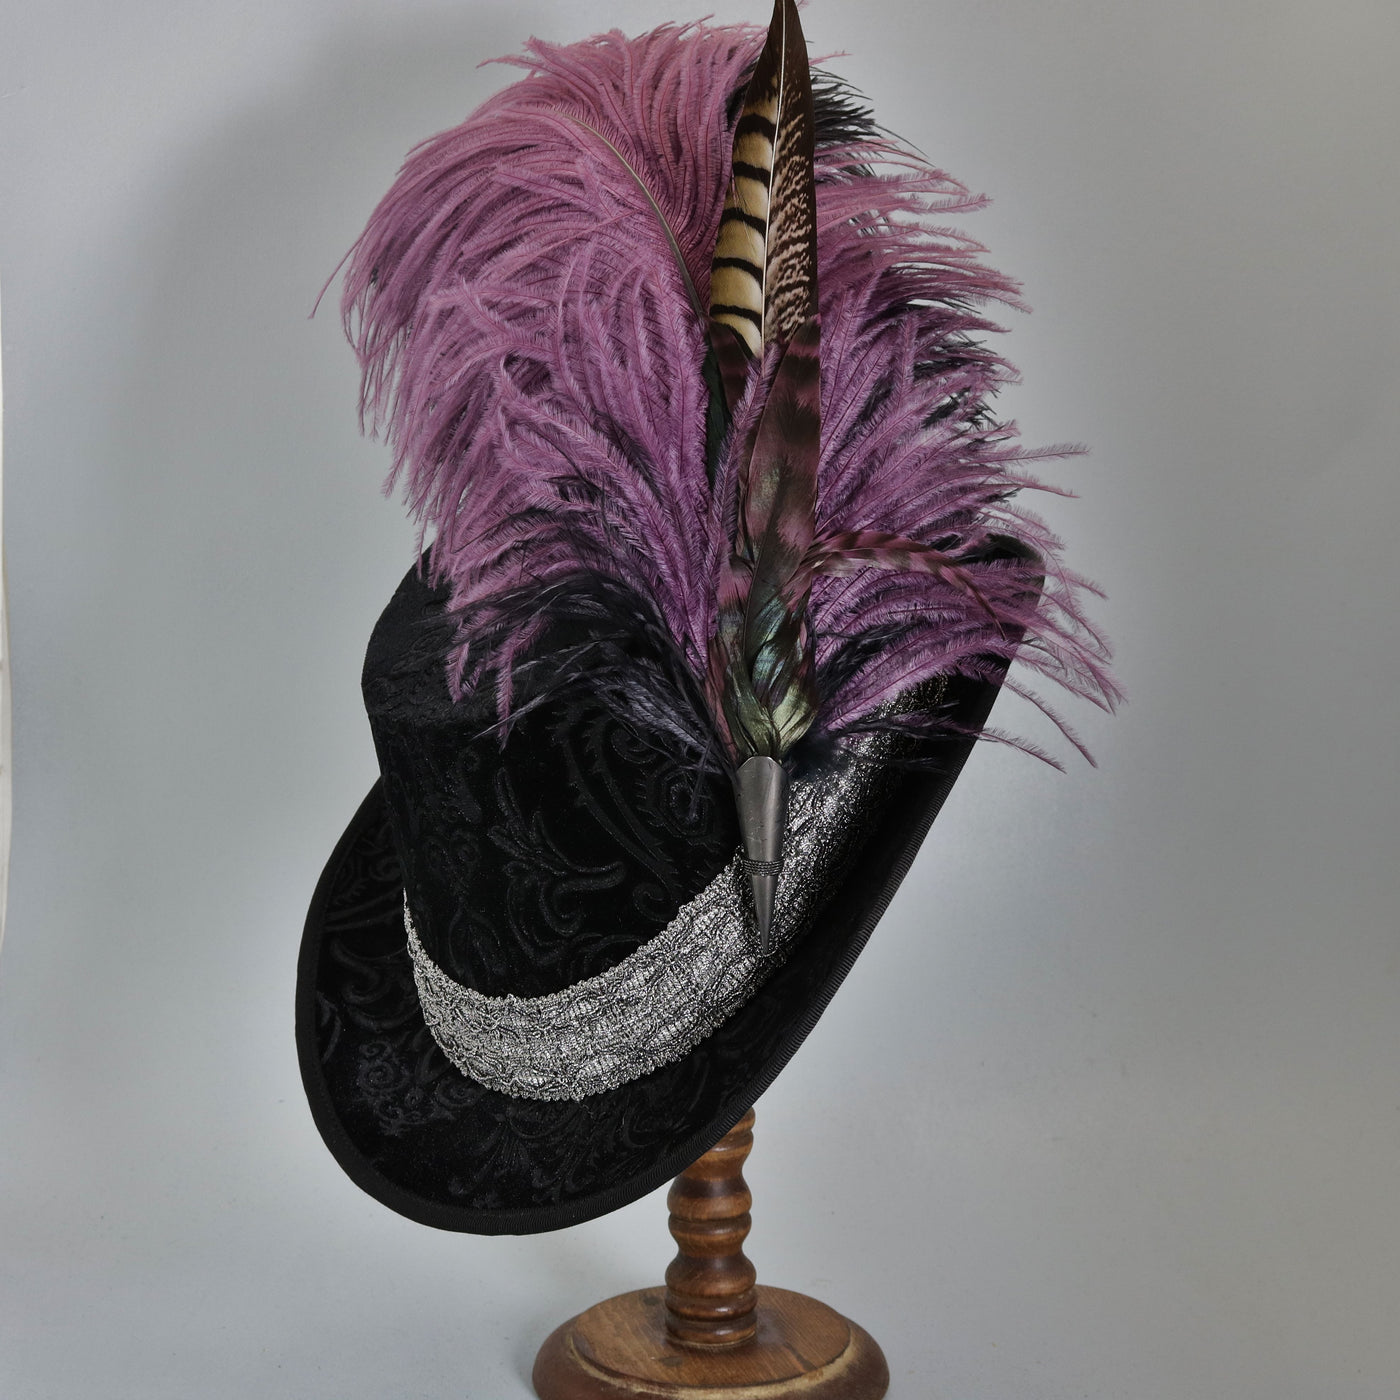 Crushed Velvet Tall Hat - Black Embossed / Silver - Tall Toad